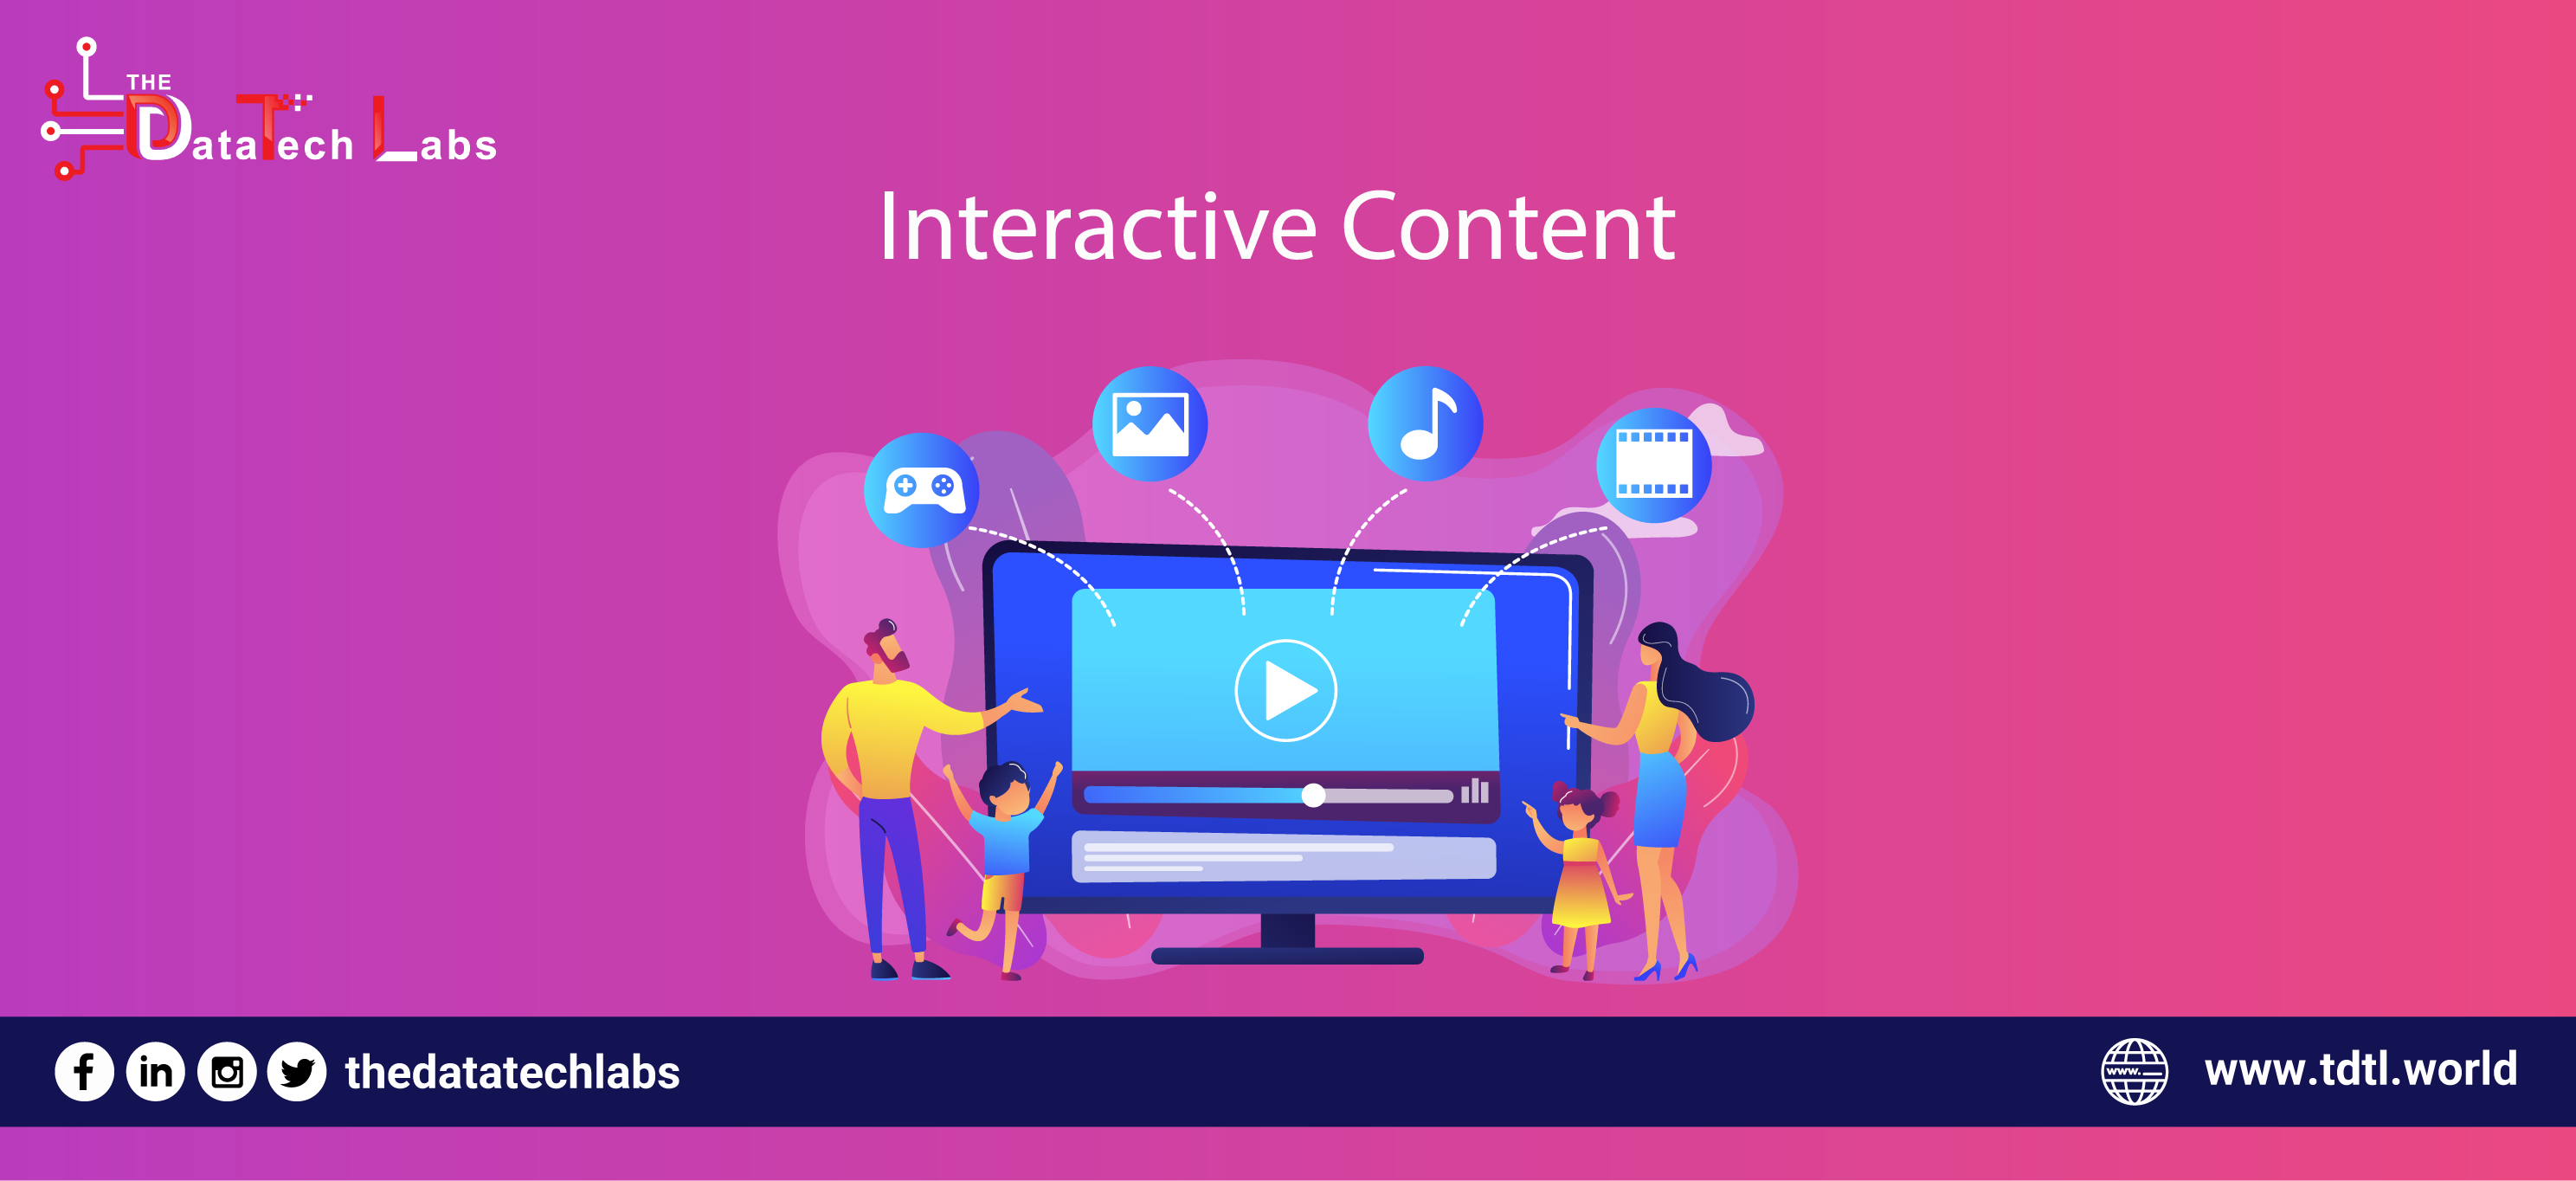 5 Tips on how to Produce Interactive Content!